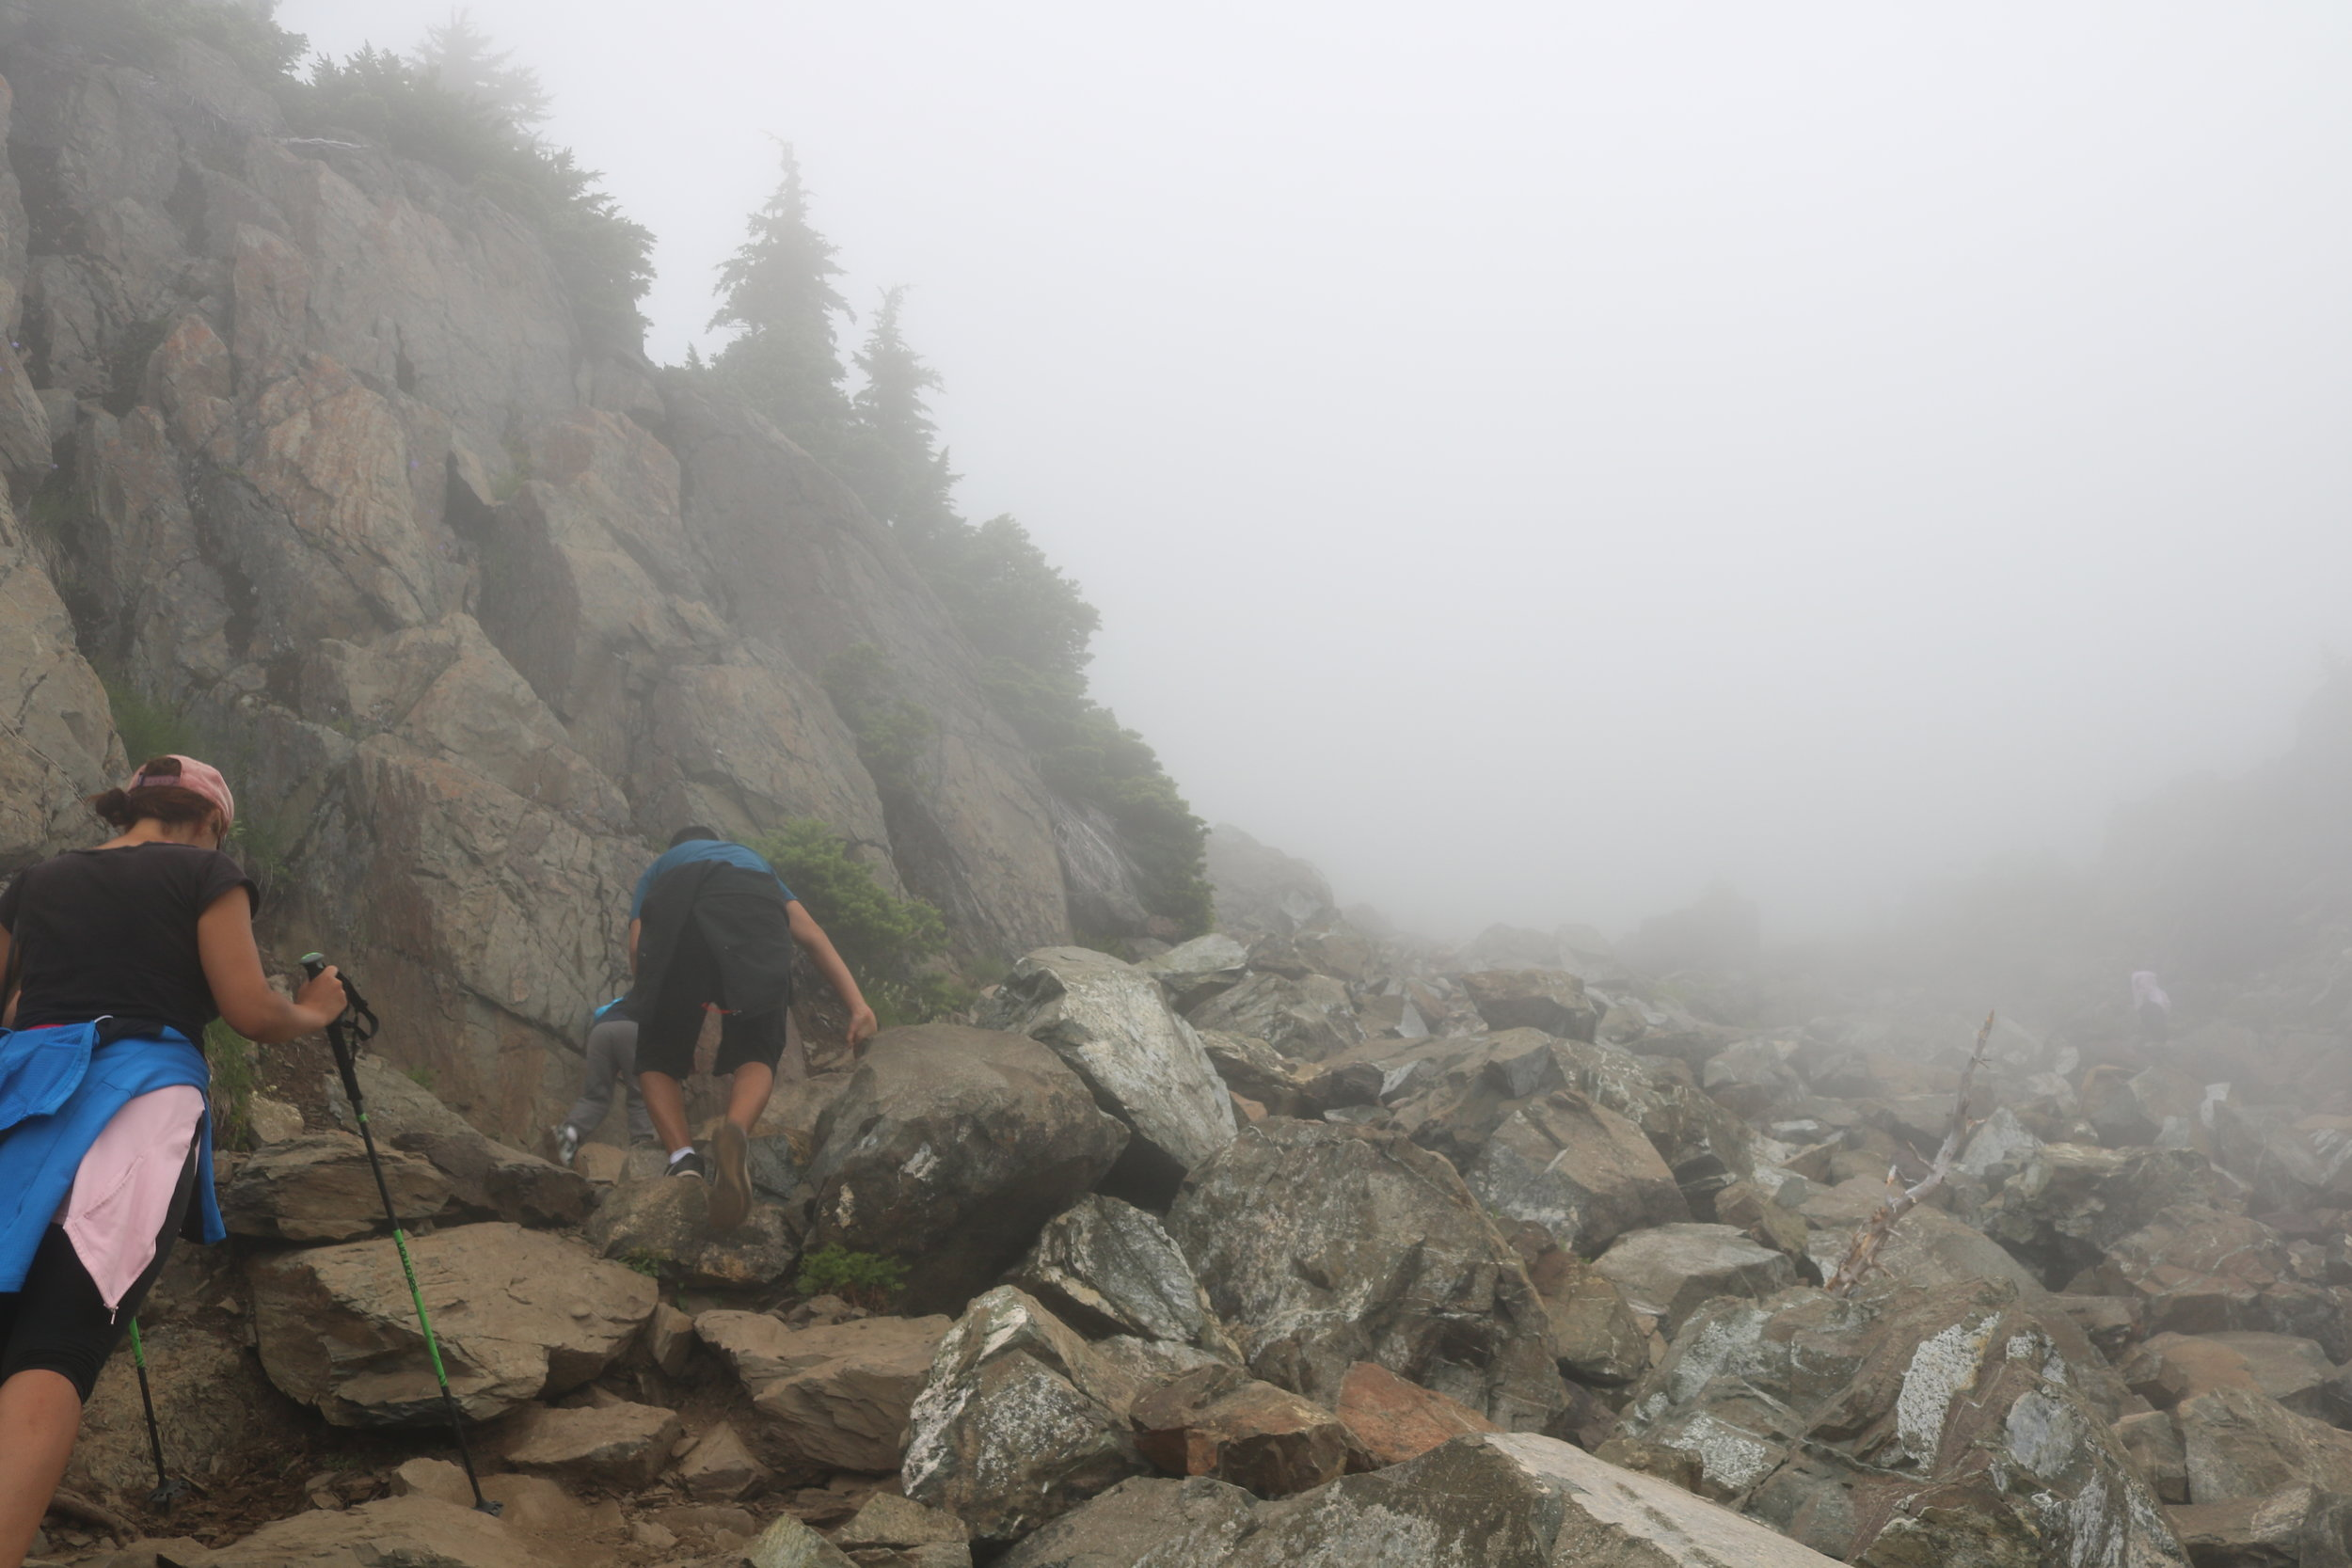 At times, during this section, there may be some scrambling required to ascend to the summit of Mount Ellinor.